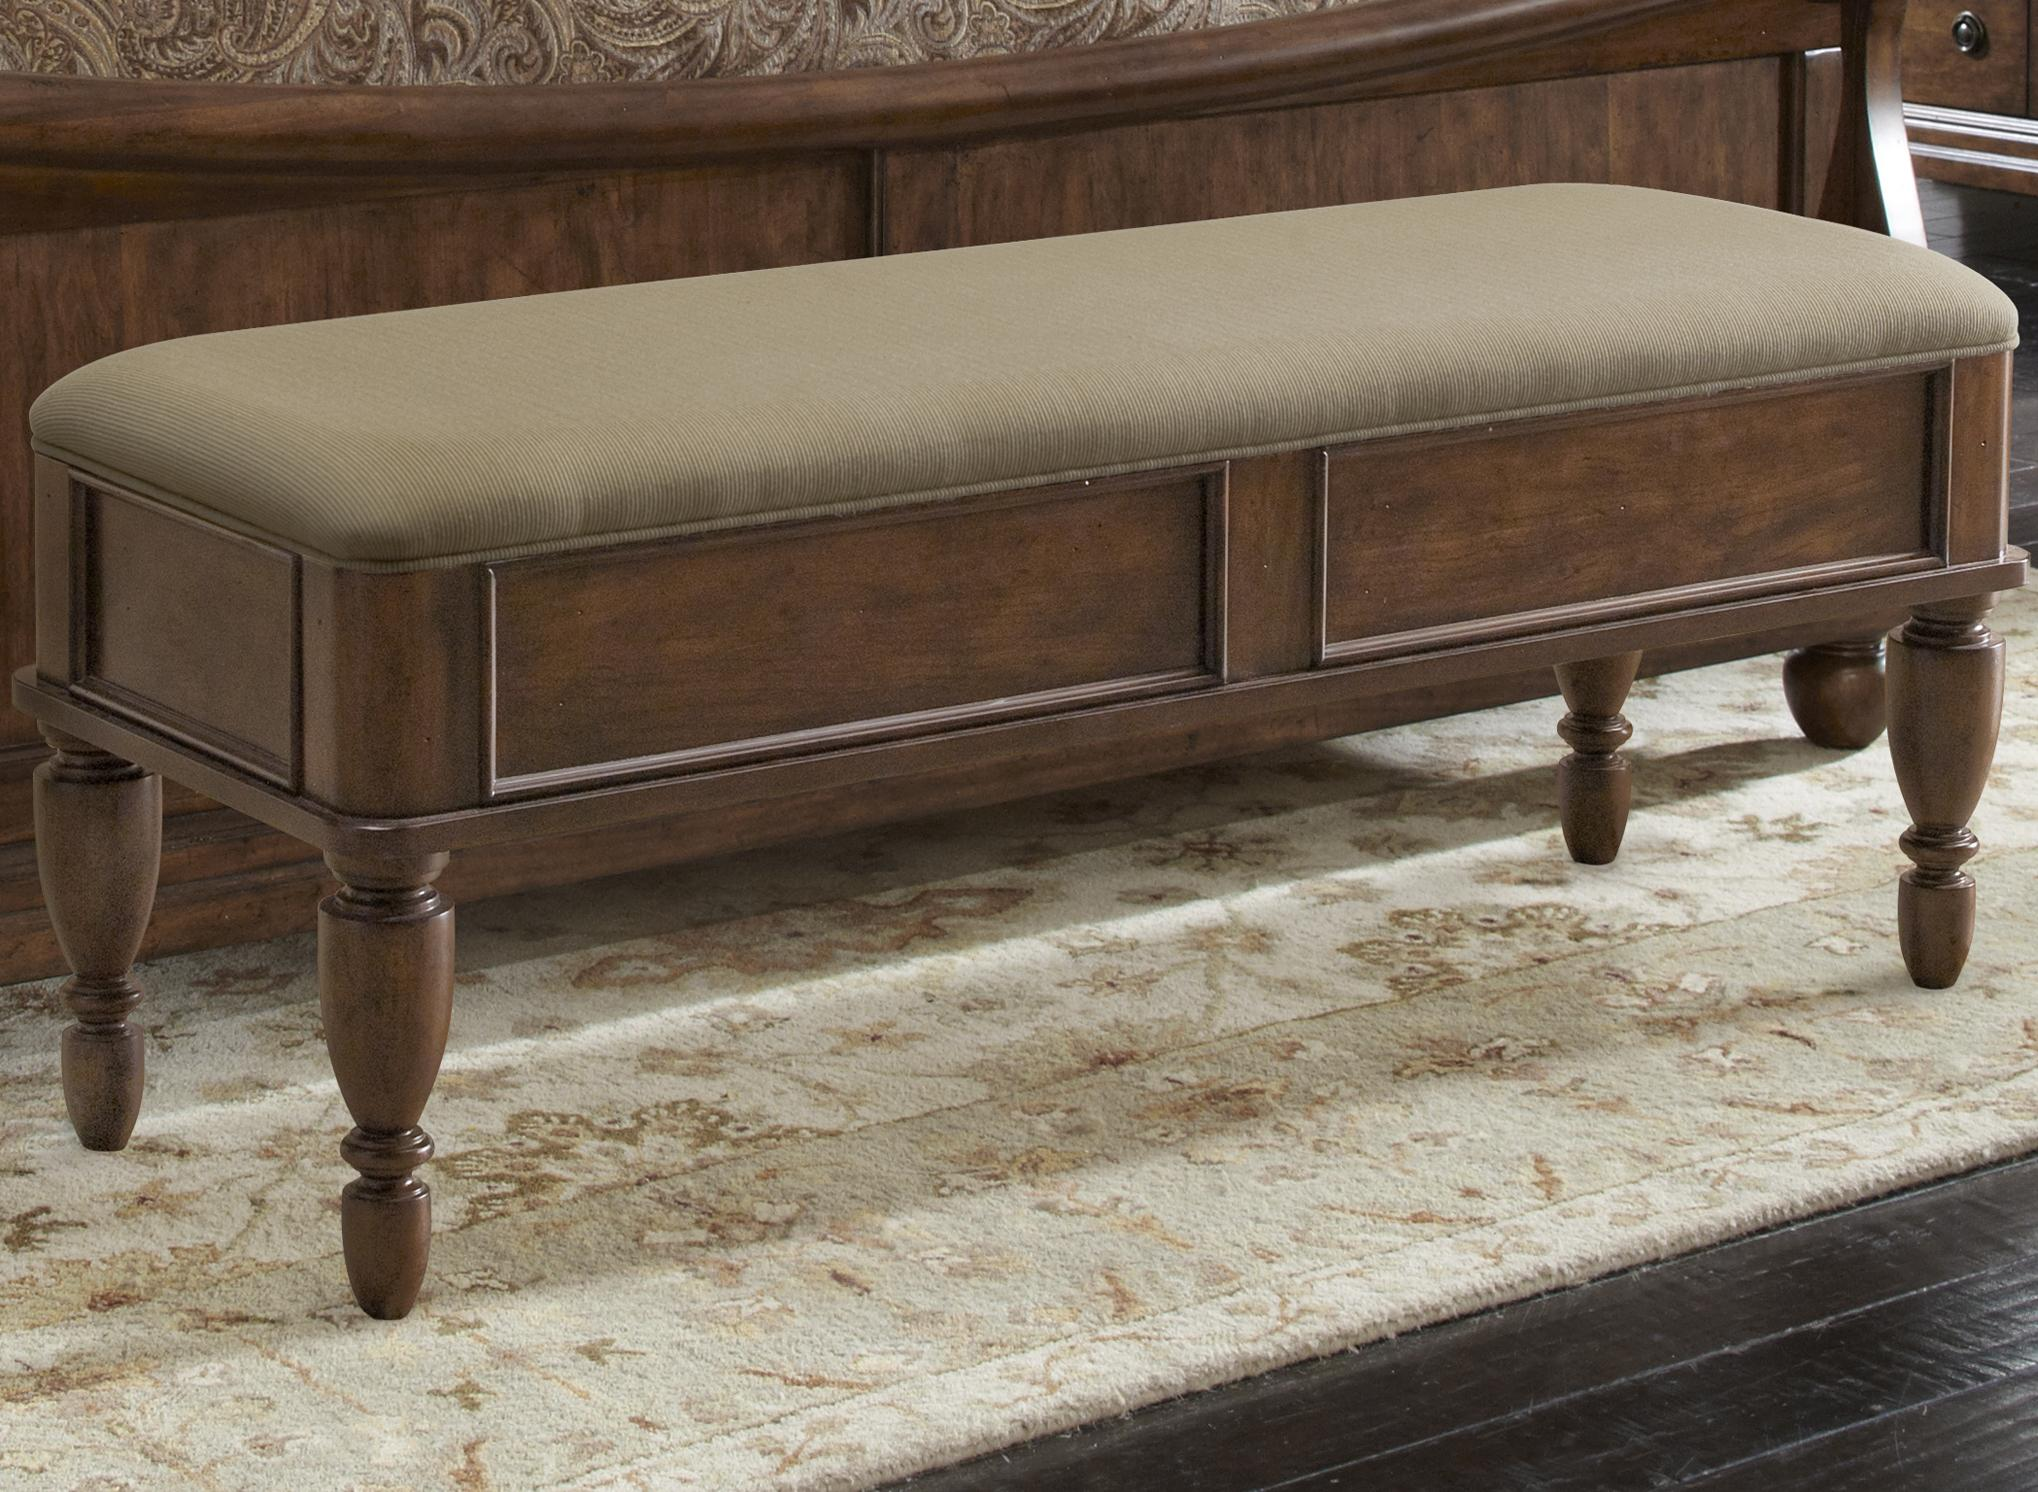 Ordinaire Bed Bench With Upholstered Seat